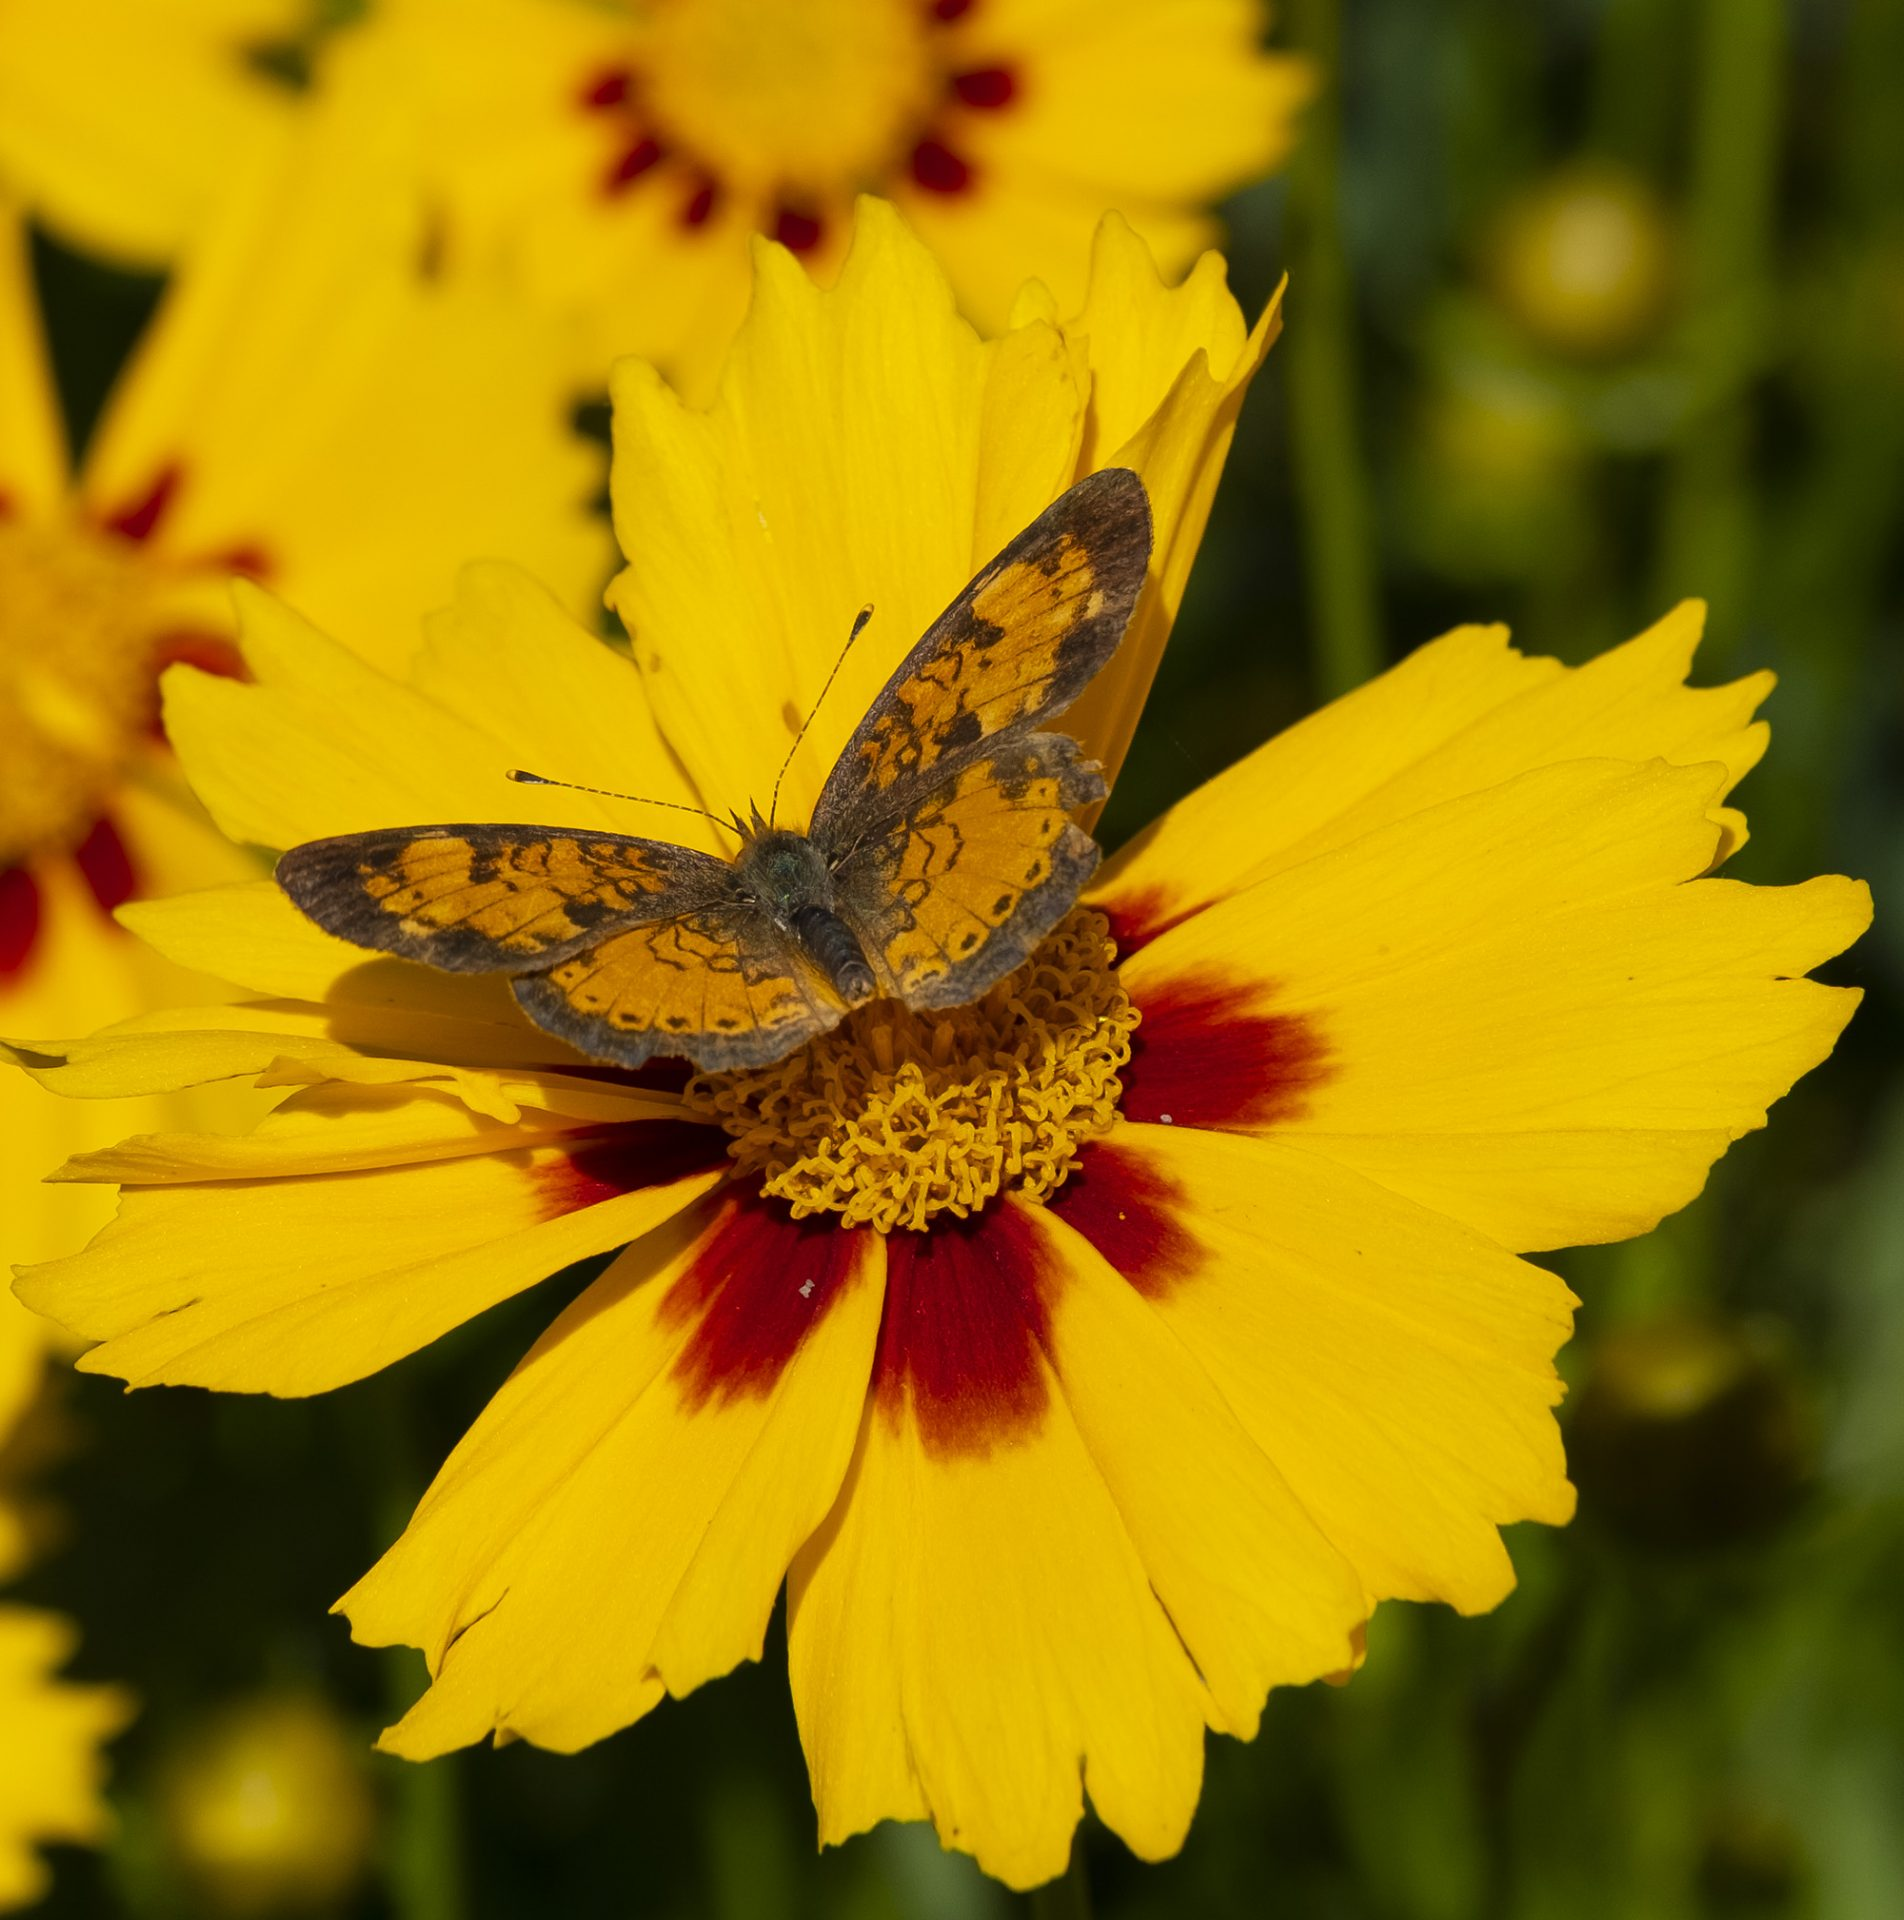 Pearl Crescent Butterfly on calendula flower